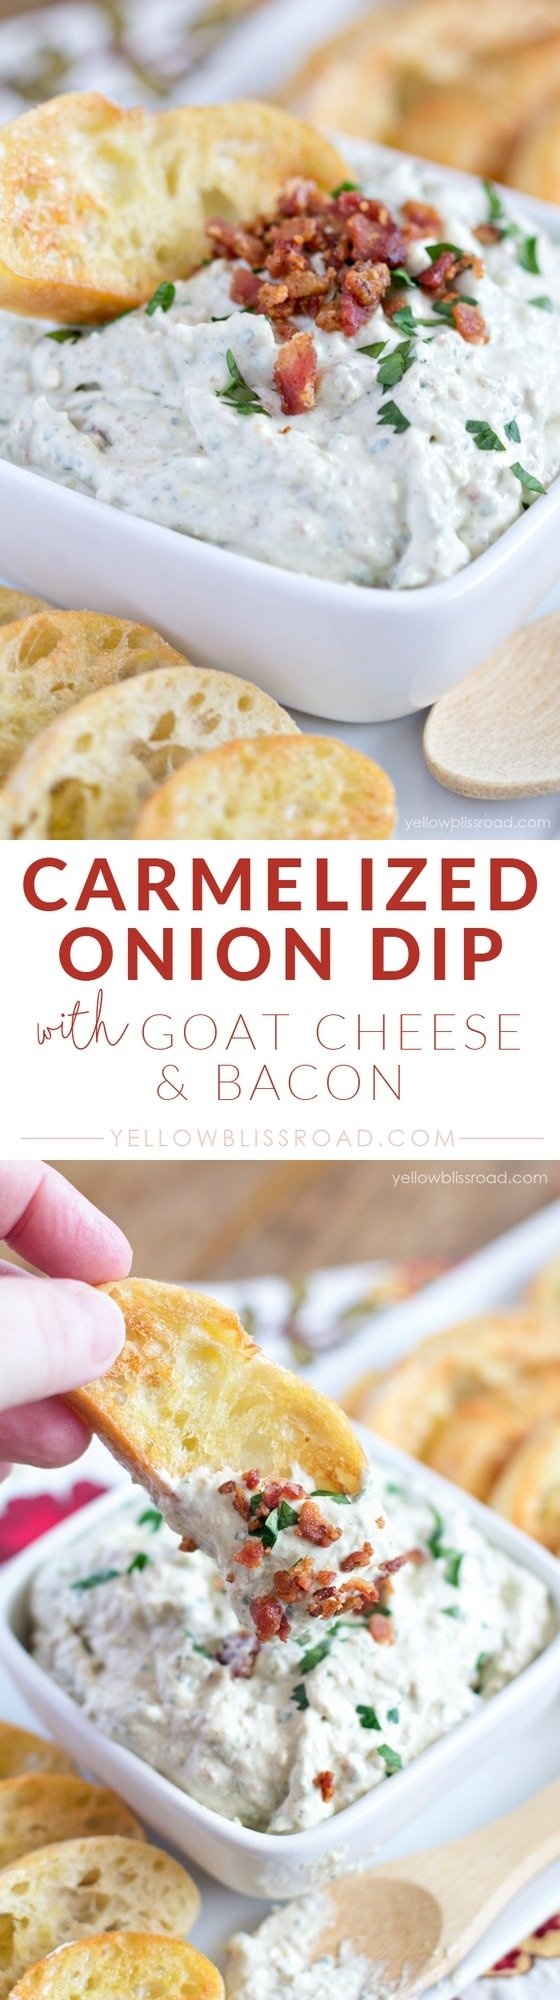 Carmelized Onion Dip with Goat Cheese and Bacon